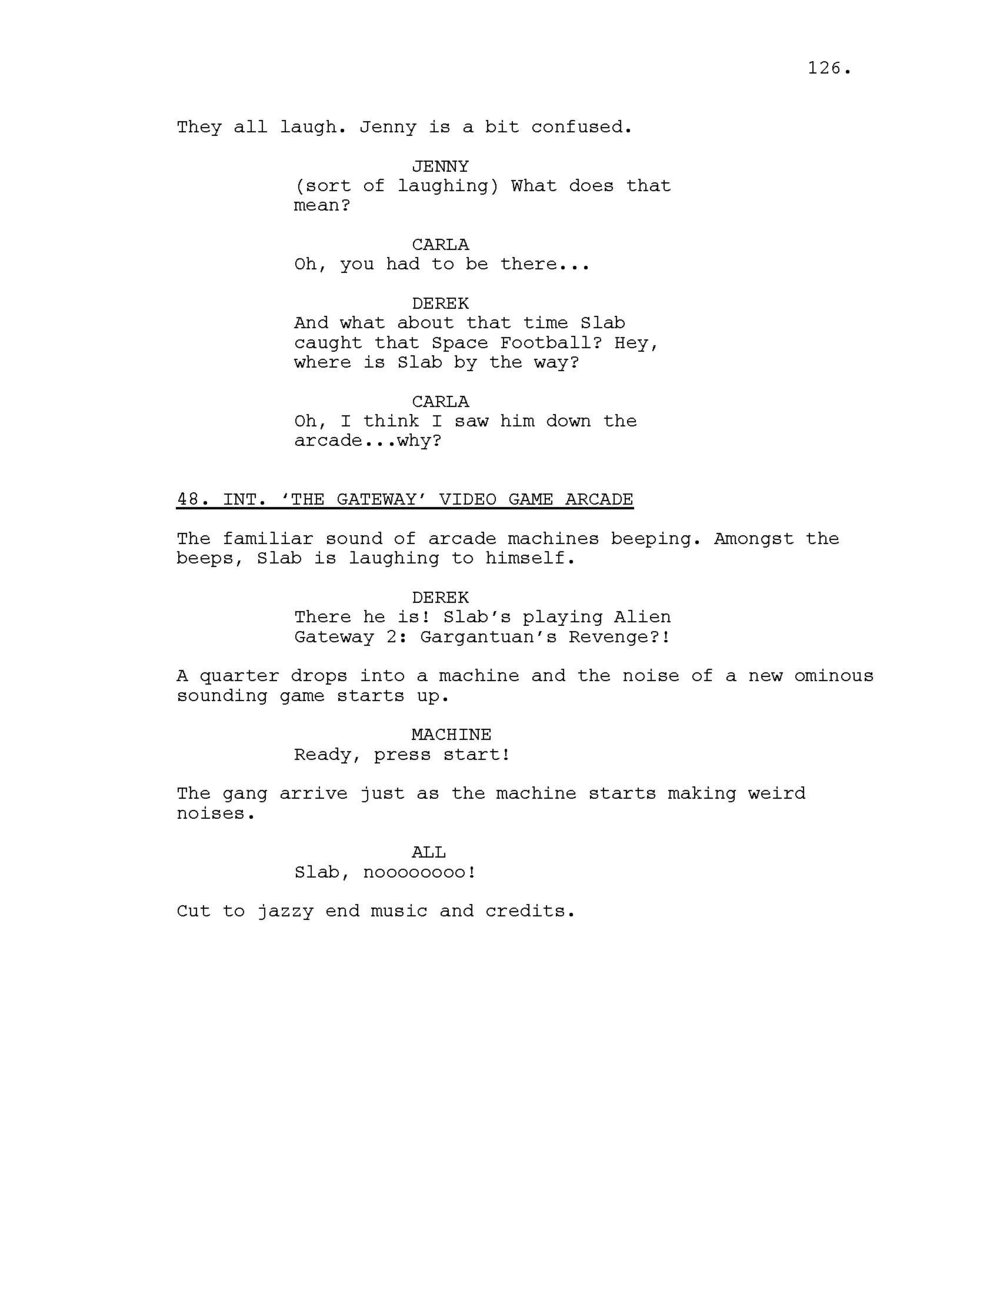 INVISIBLE WORLD SCRIPT_Page_127.jpg